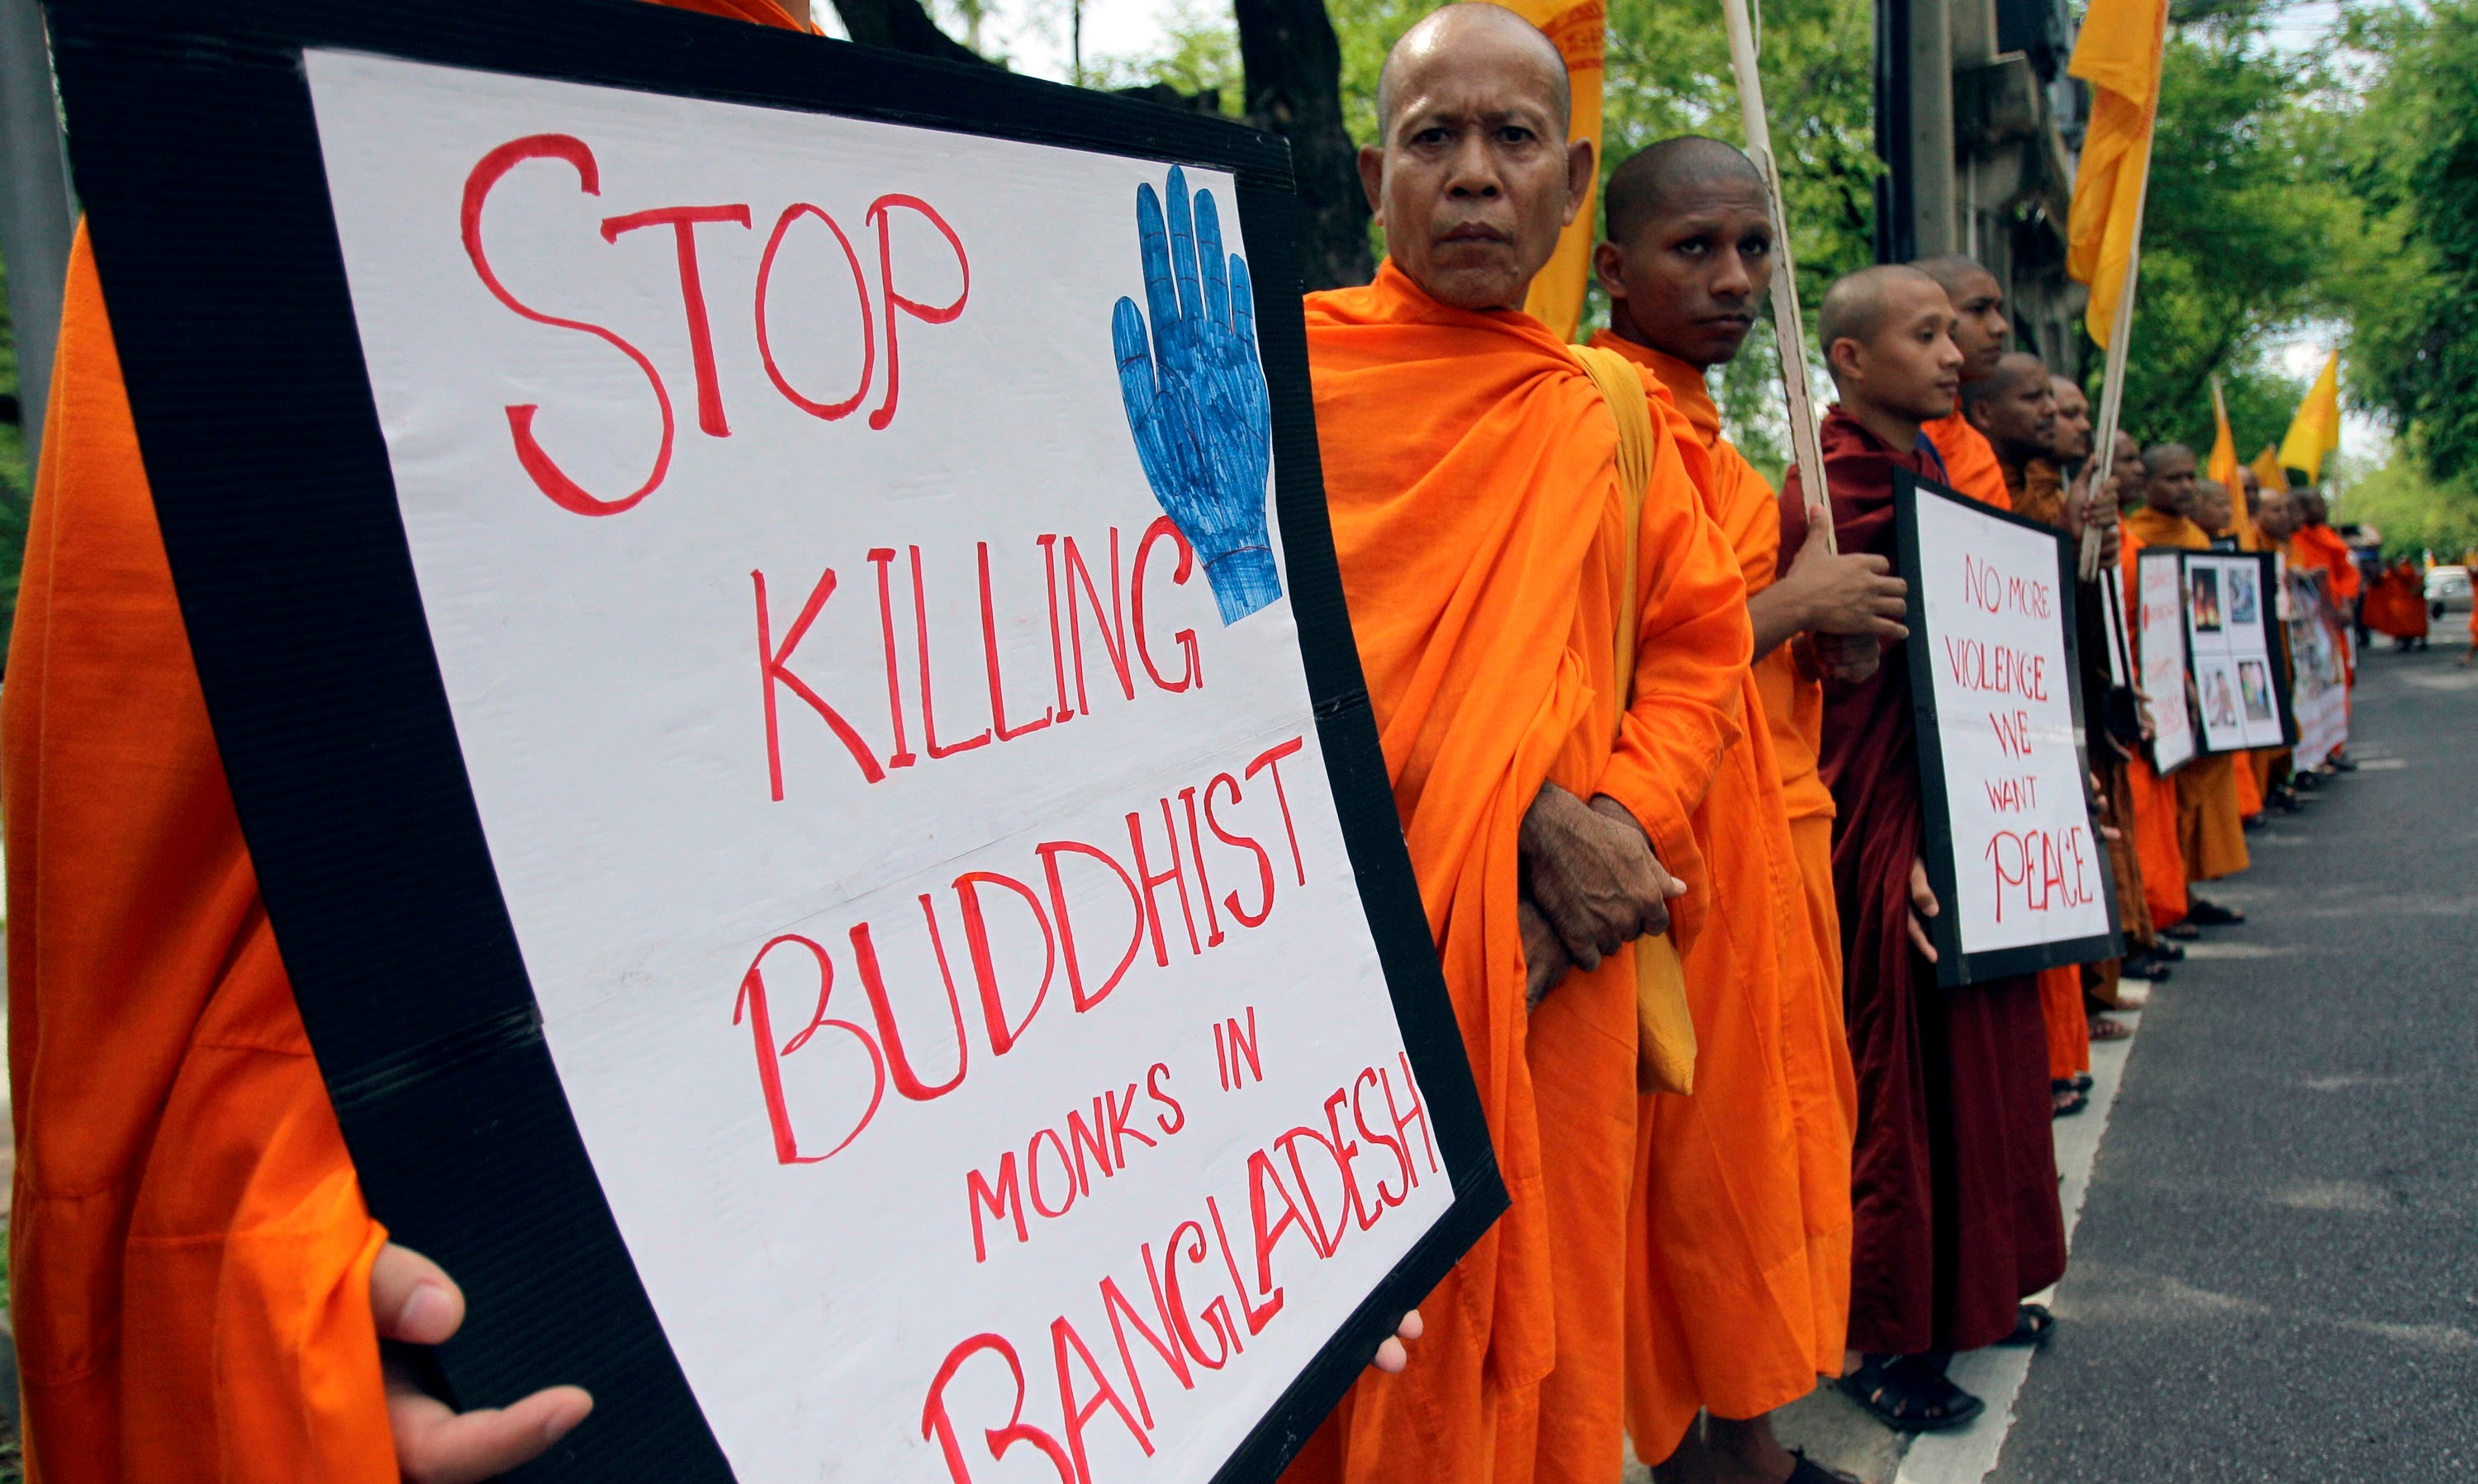 Buddhist monk hacked to death in Bangladesh - Canasian ...